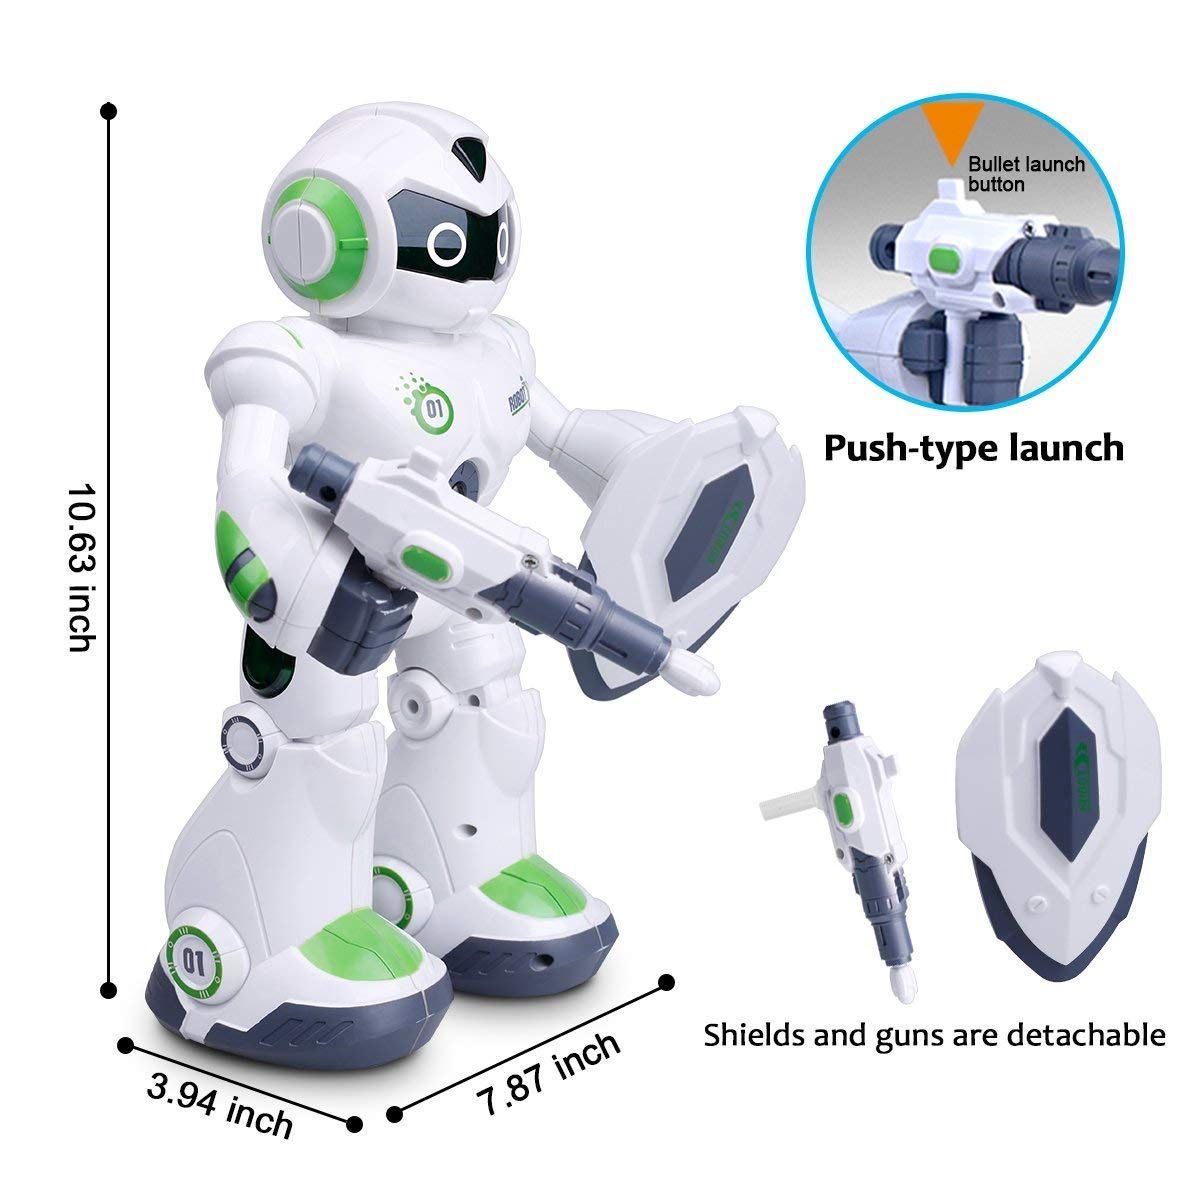 Remote Control Robot,Robot Toys,Smart Robotics for Kids with Gesture Sense, Interactive Walking Singing Dancing Speaking,with LED Light, Shoots Missiles, Talking, Walking, Singing, Educational Toys by Locke Teddy (Image #9)